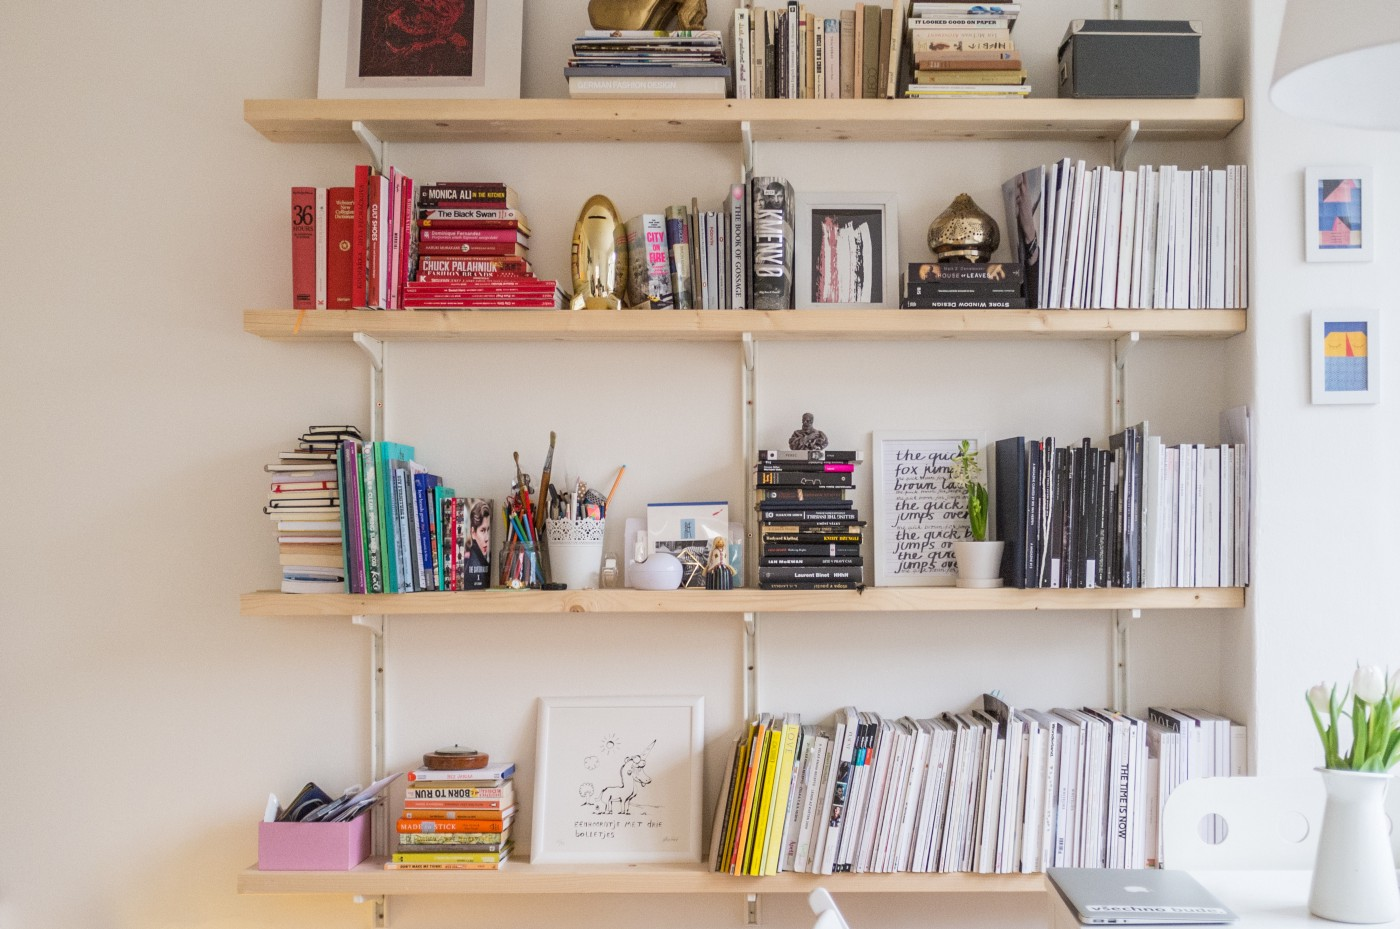 Wall mounted shelves with books sorted by color